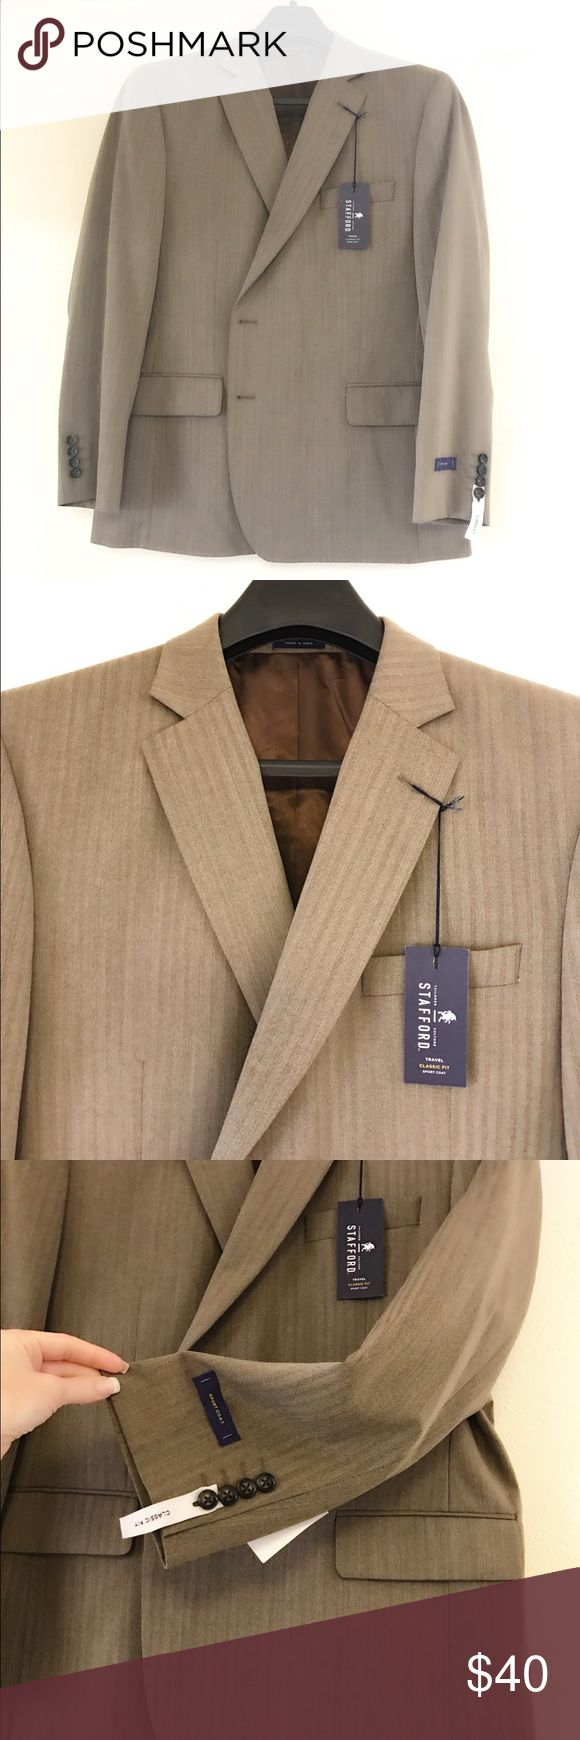 Men's Stafford Sport Coat This men's sports coat is new with tags. It is a classic fit sports coat. stafford Suits & Blazers Sport Coats & Blazers